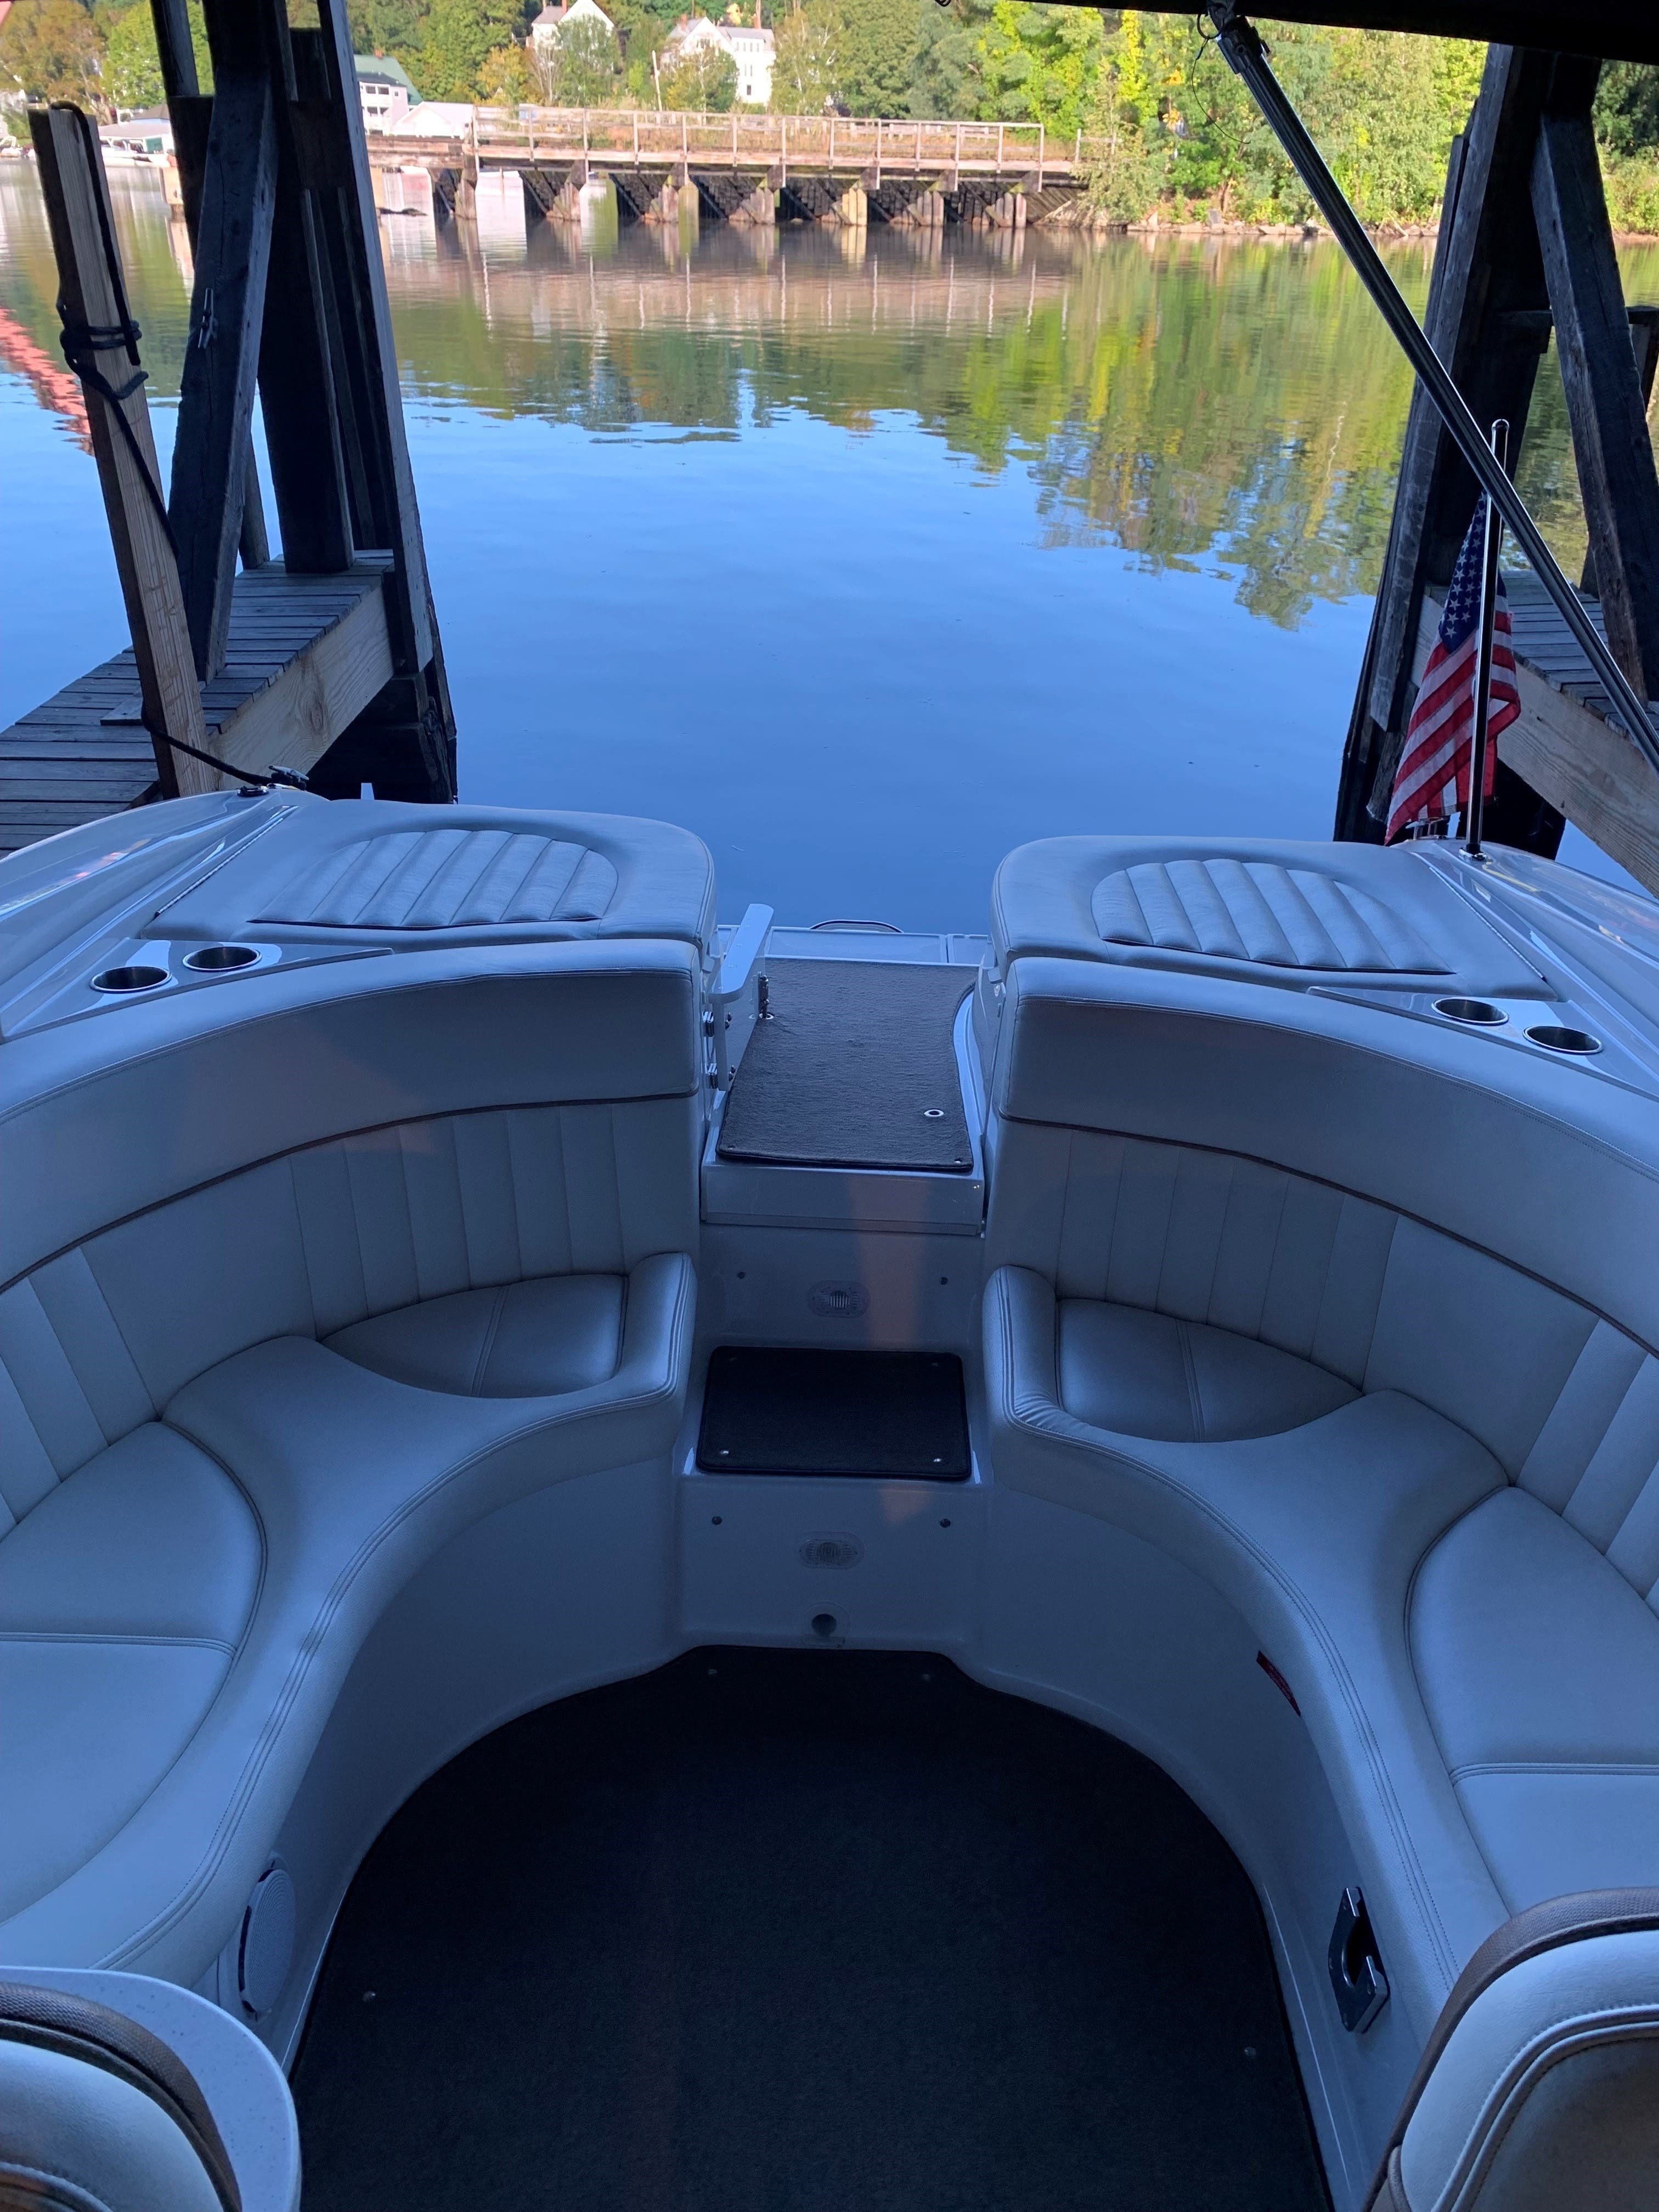 2007 Cobalt boat for sale, model of the boat is 282 & Image # 9 of 10